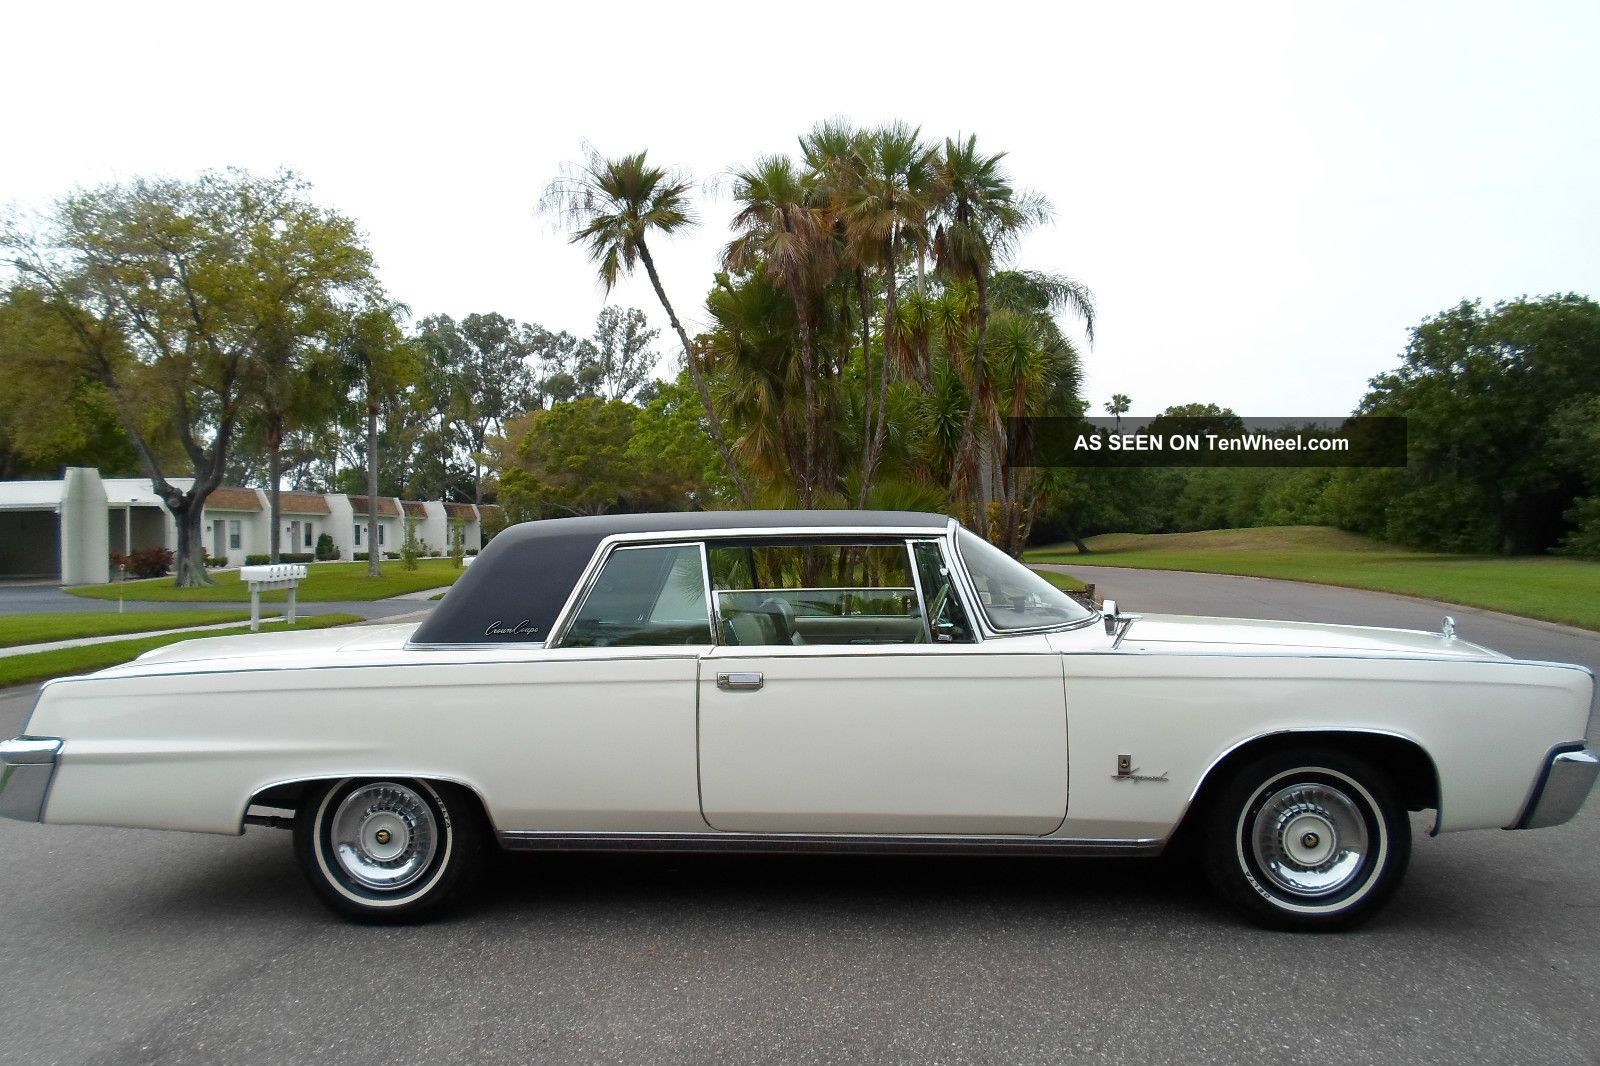 1964 Chrysler Imperial Crown Hardtop Hard Top Imperial photo